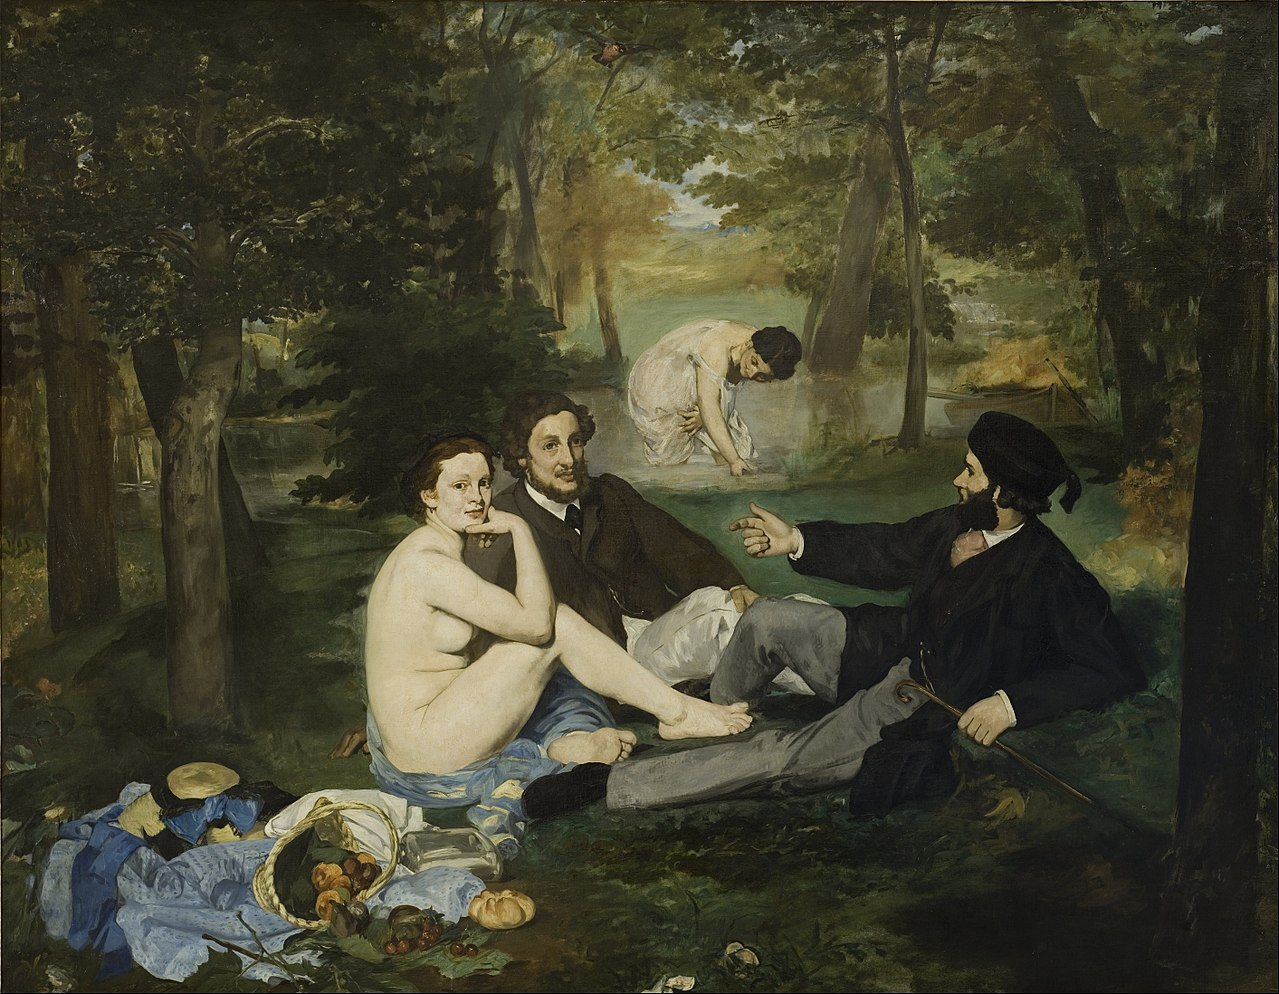 1280px-Edouard_Manet_-_Luncheon_on_the_Grass_-_Google_Art_Project.jpg